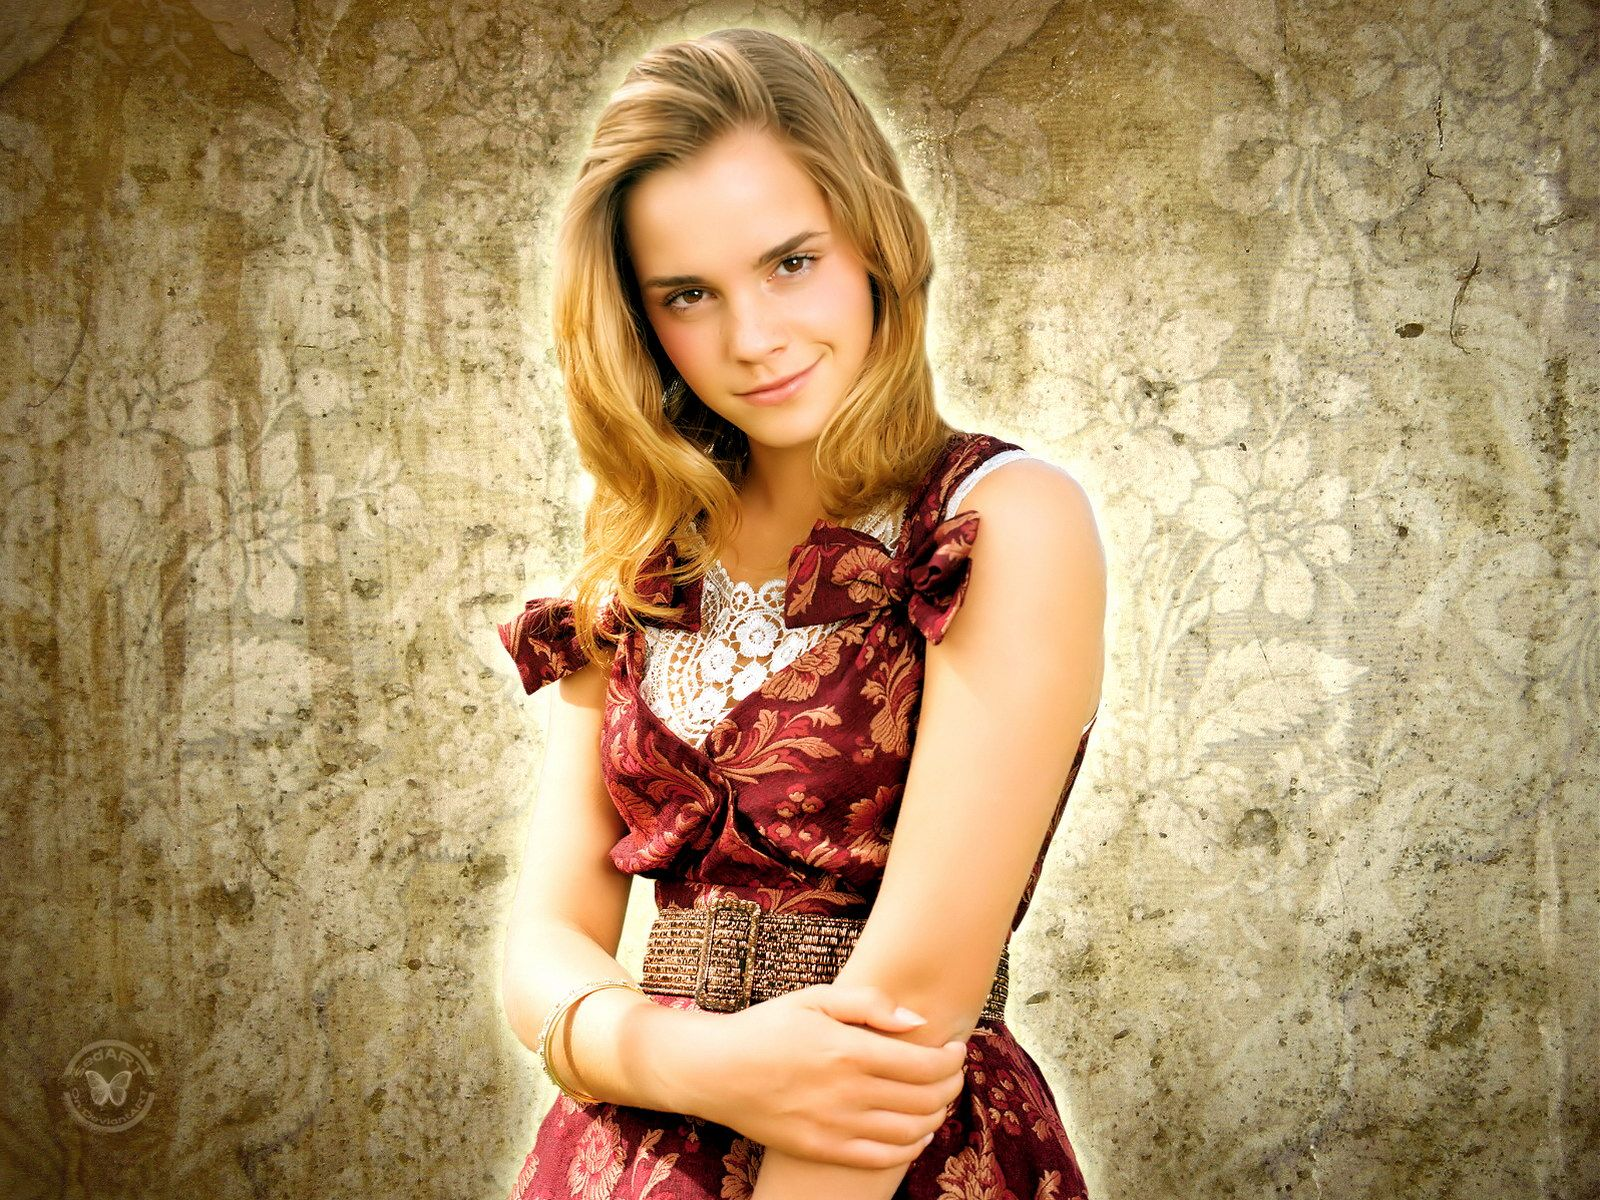 watson milf women Free emma watson pics browse the largest collection of emma watson pics and pictures on the web.